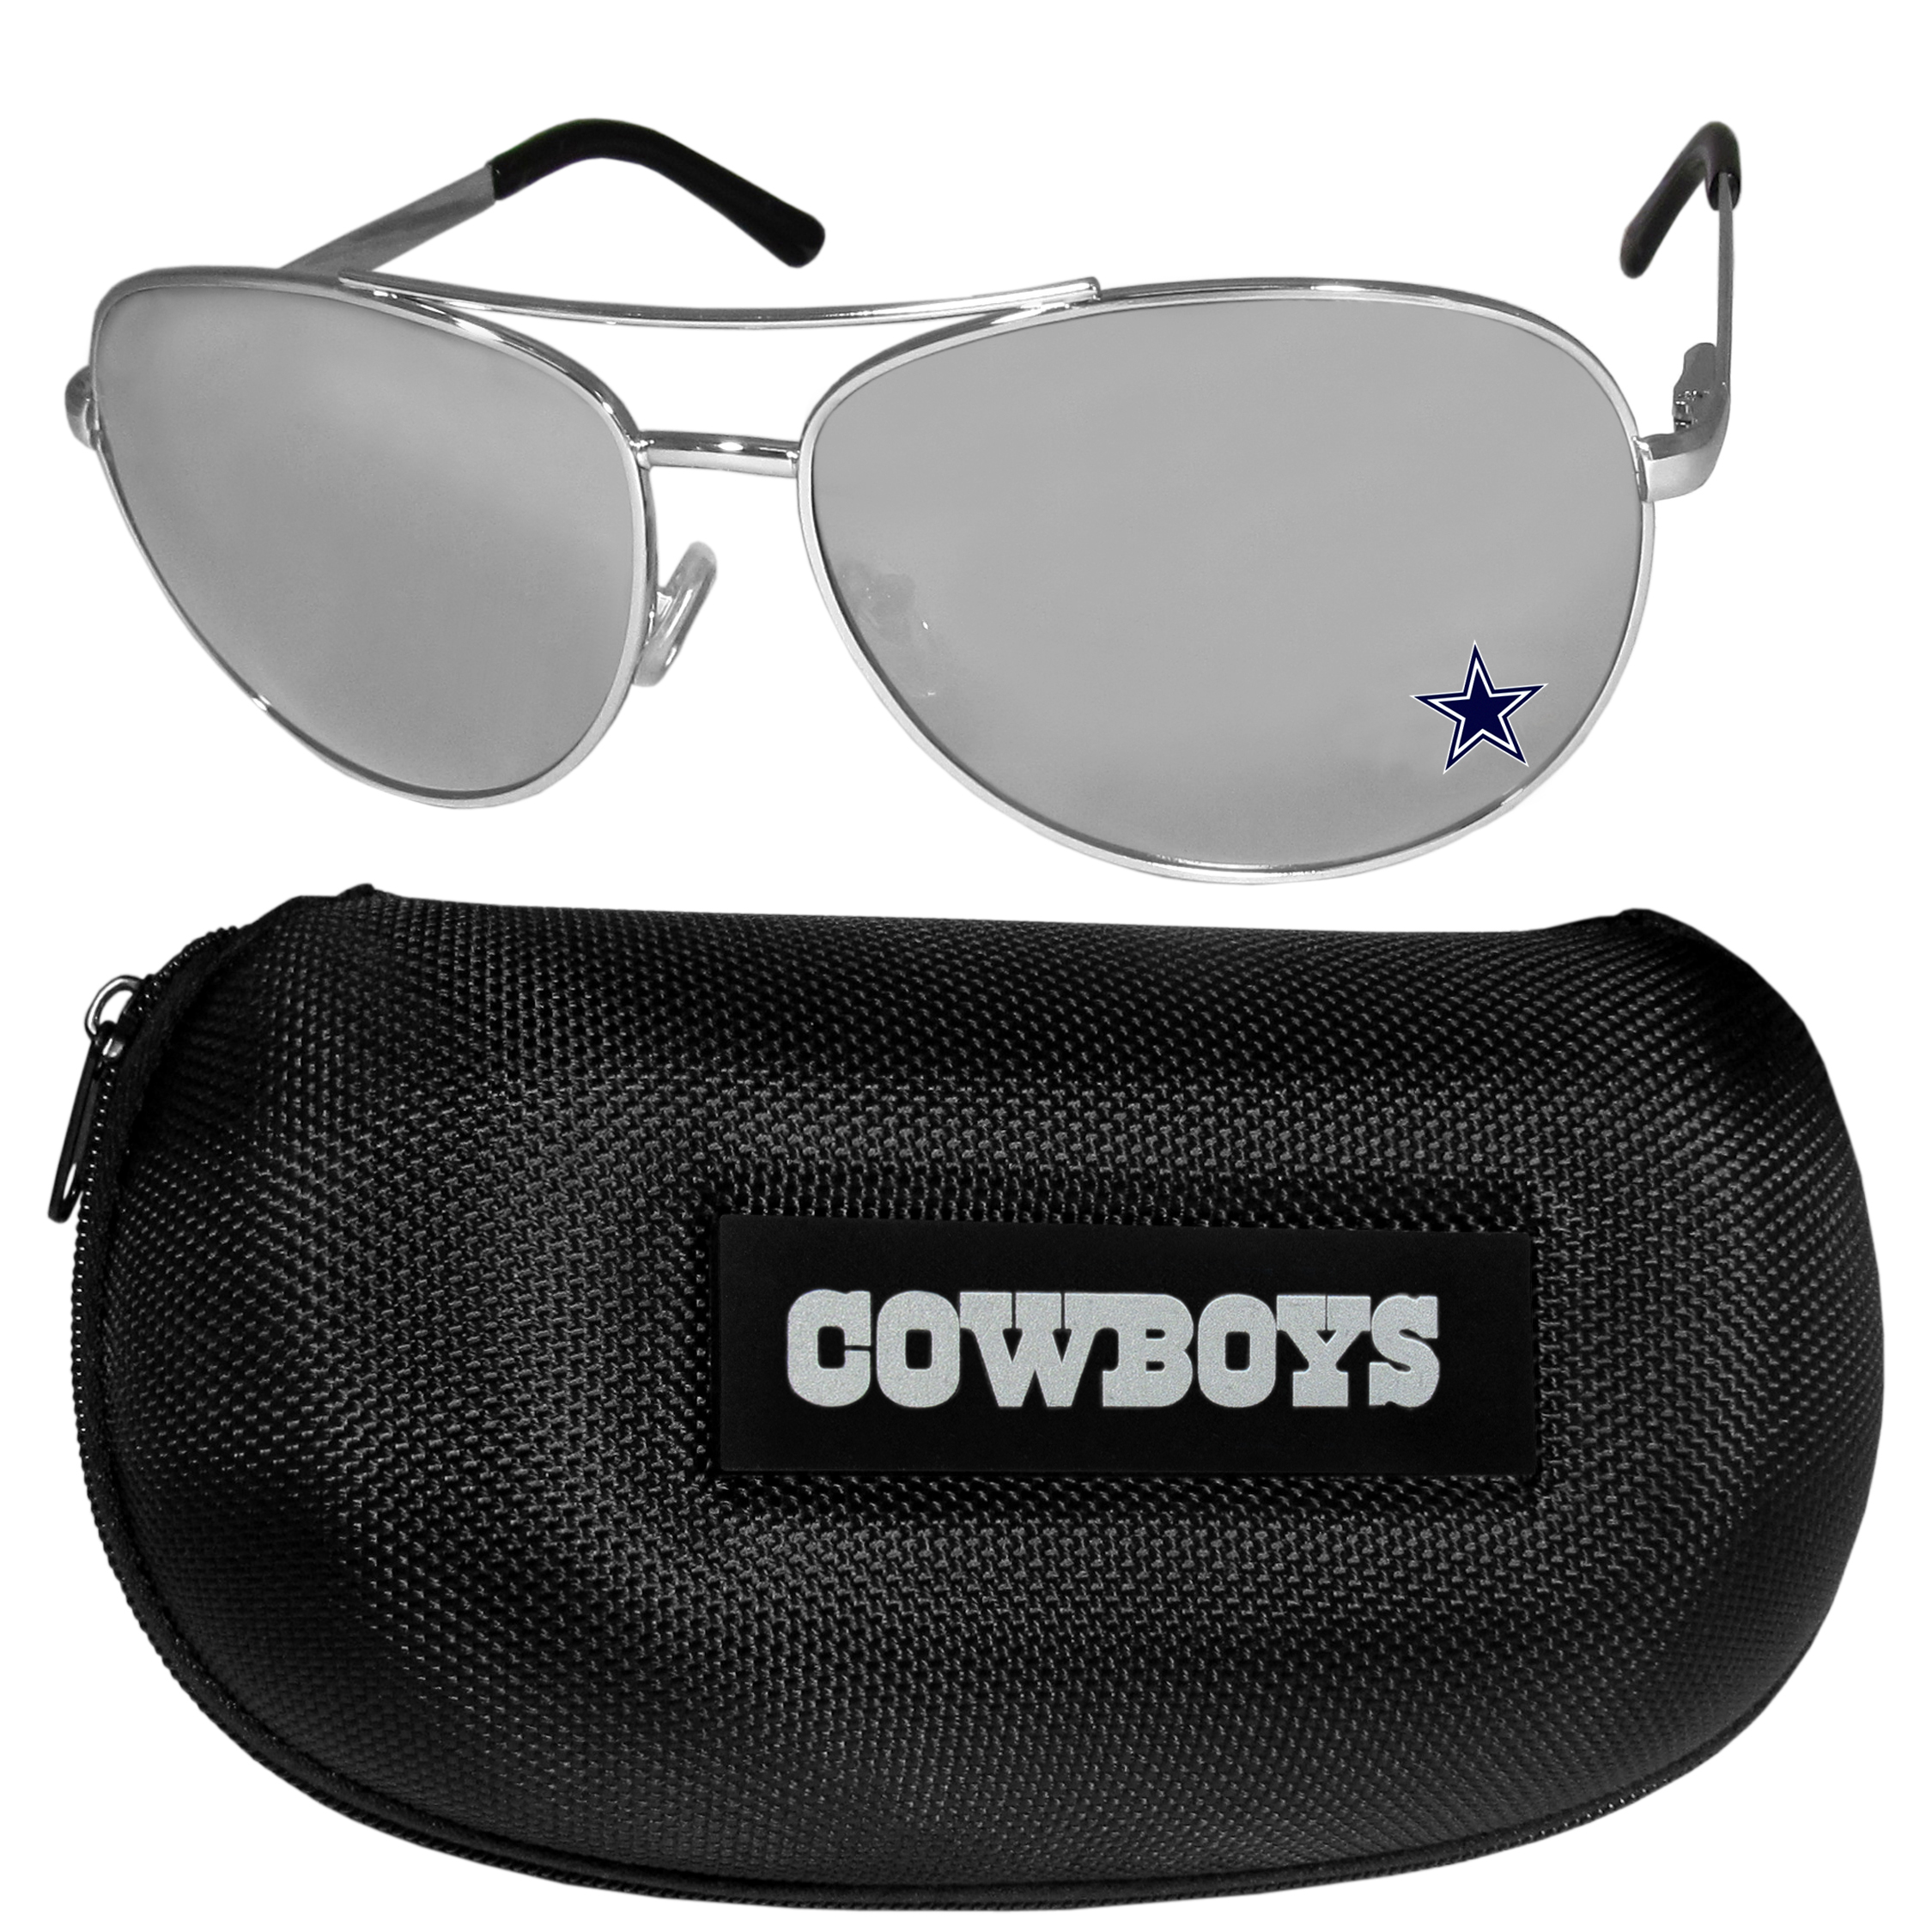 Dallas Cowboys Aviator Sunglasses and Zippered Carrying Case - Aviator sunglasses are truly an iconic retro fashion statement that never goes out-of-style. Our Dallas Cowboys  aviator sunglasses pair this classic look with your love of the game. The iridium coated lenses reduce glare while driving, boating, golfing and their 100% UVA/UVB rating provides you with the maximum UV protection for all your outdoor activities. A millennial favorite, these affordable designer frames are the perfect eyewear accessory for a sports fan that is looking for high-quality at an affordable price. The durable, flex hinged frames are tough enough for hiking and camping or if you prefer sun bathing by the pool or on the beach these shades will really stand the test of time. The sunglasses come with a hard shell zippered case which has a large team logo on the lid that will make even the most die-hard fan proud!